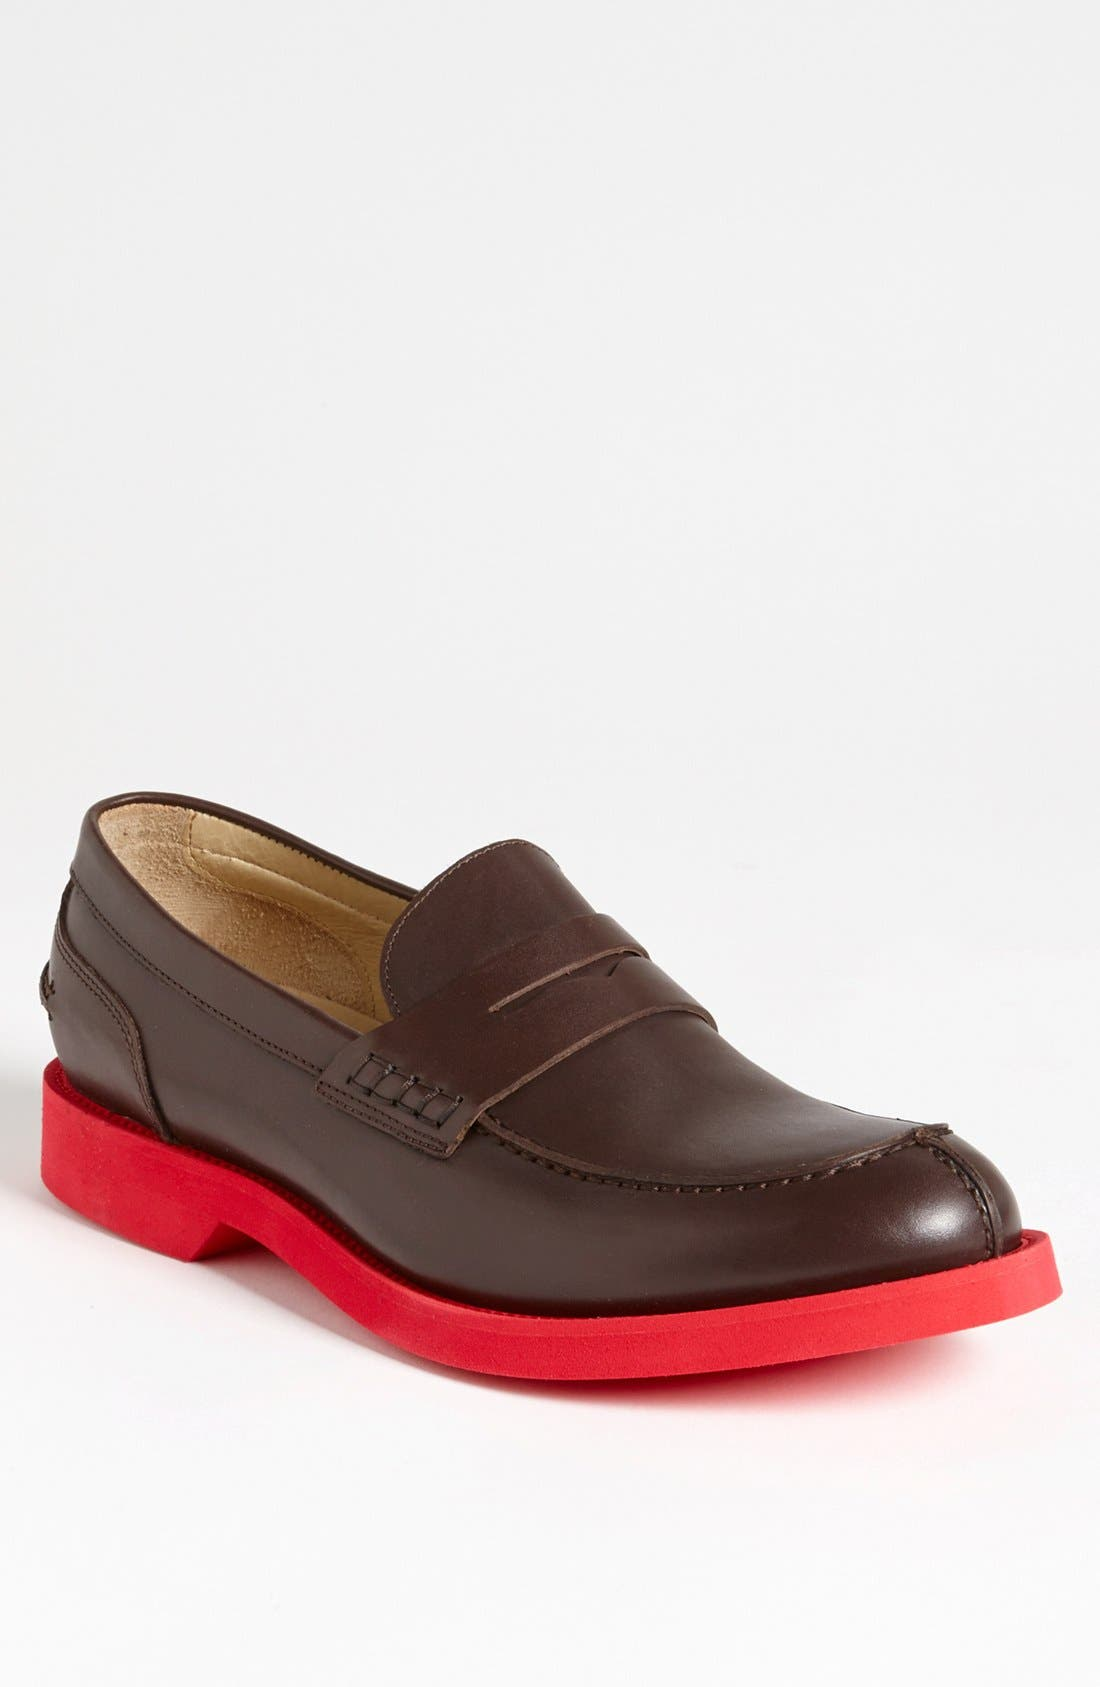 Alternate Image 1 Selected - Thomas Dean Penny Loafer